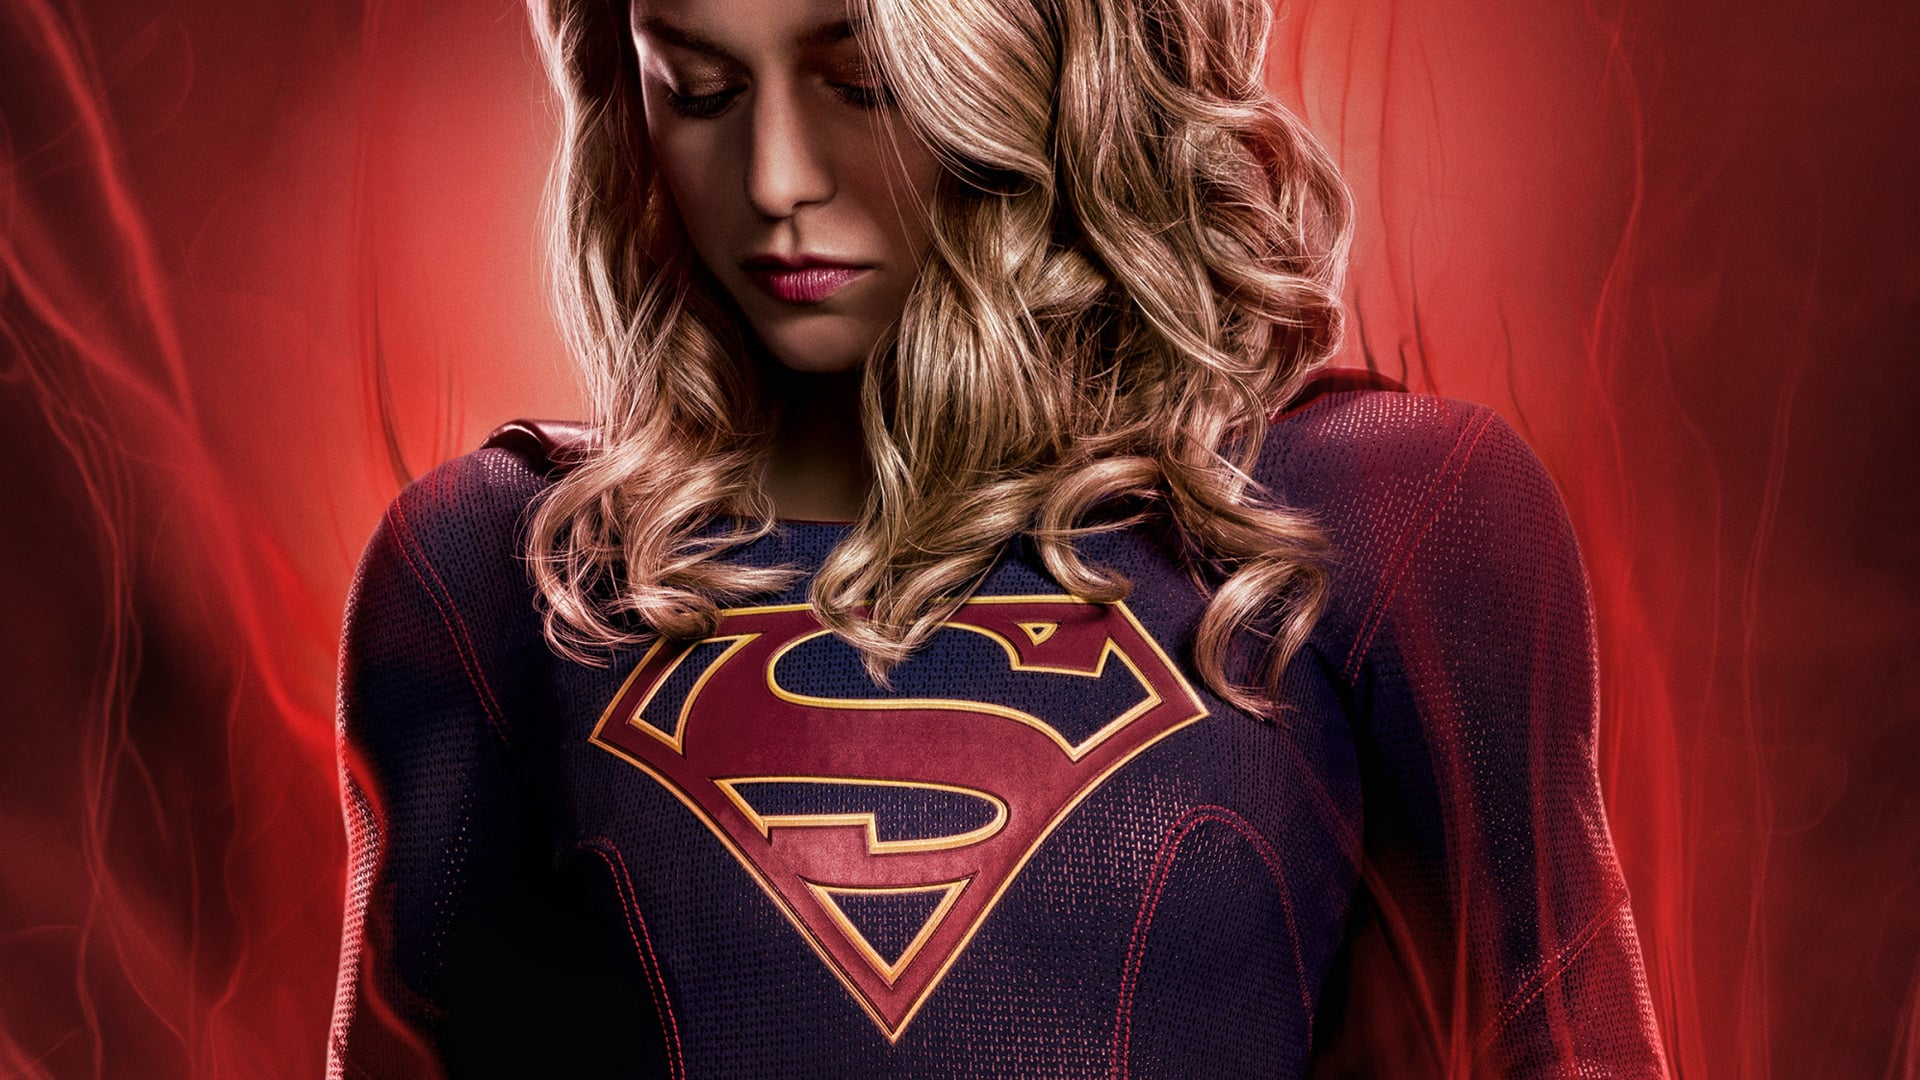 supergirl ending season 6 the cw dc comics